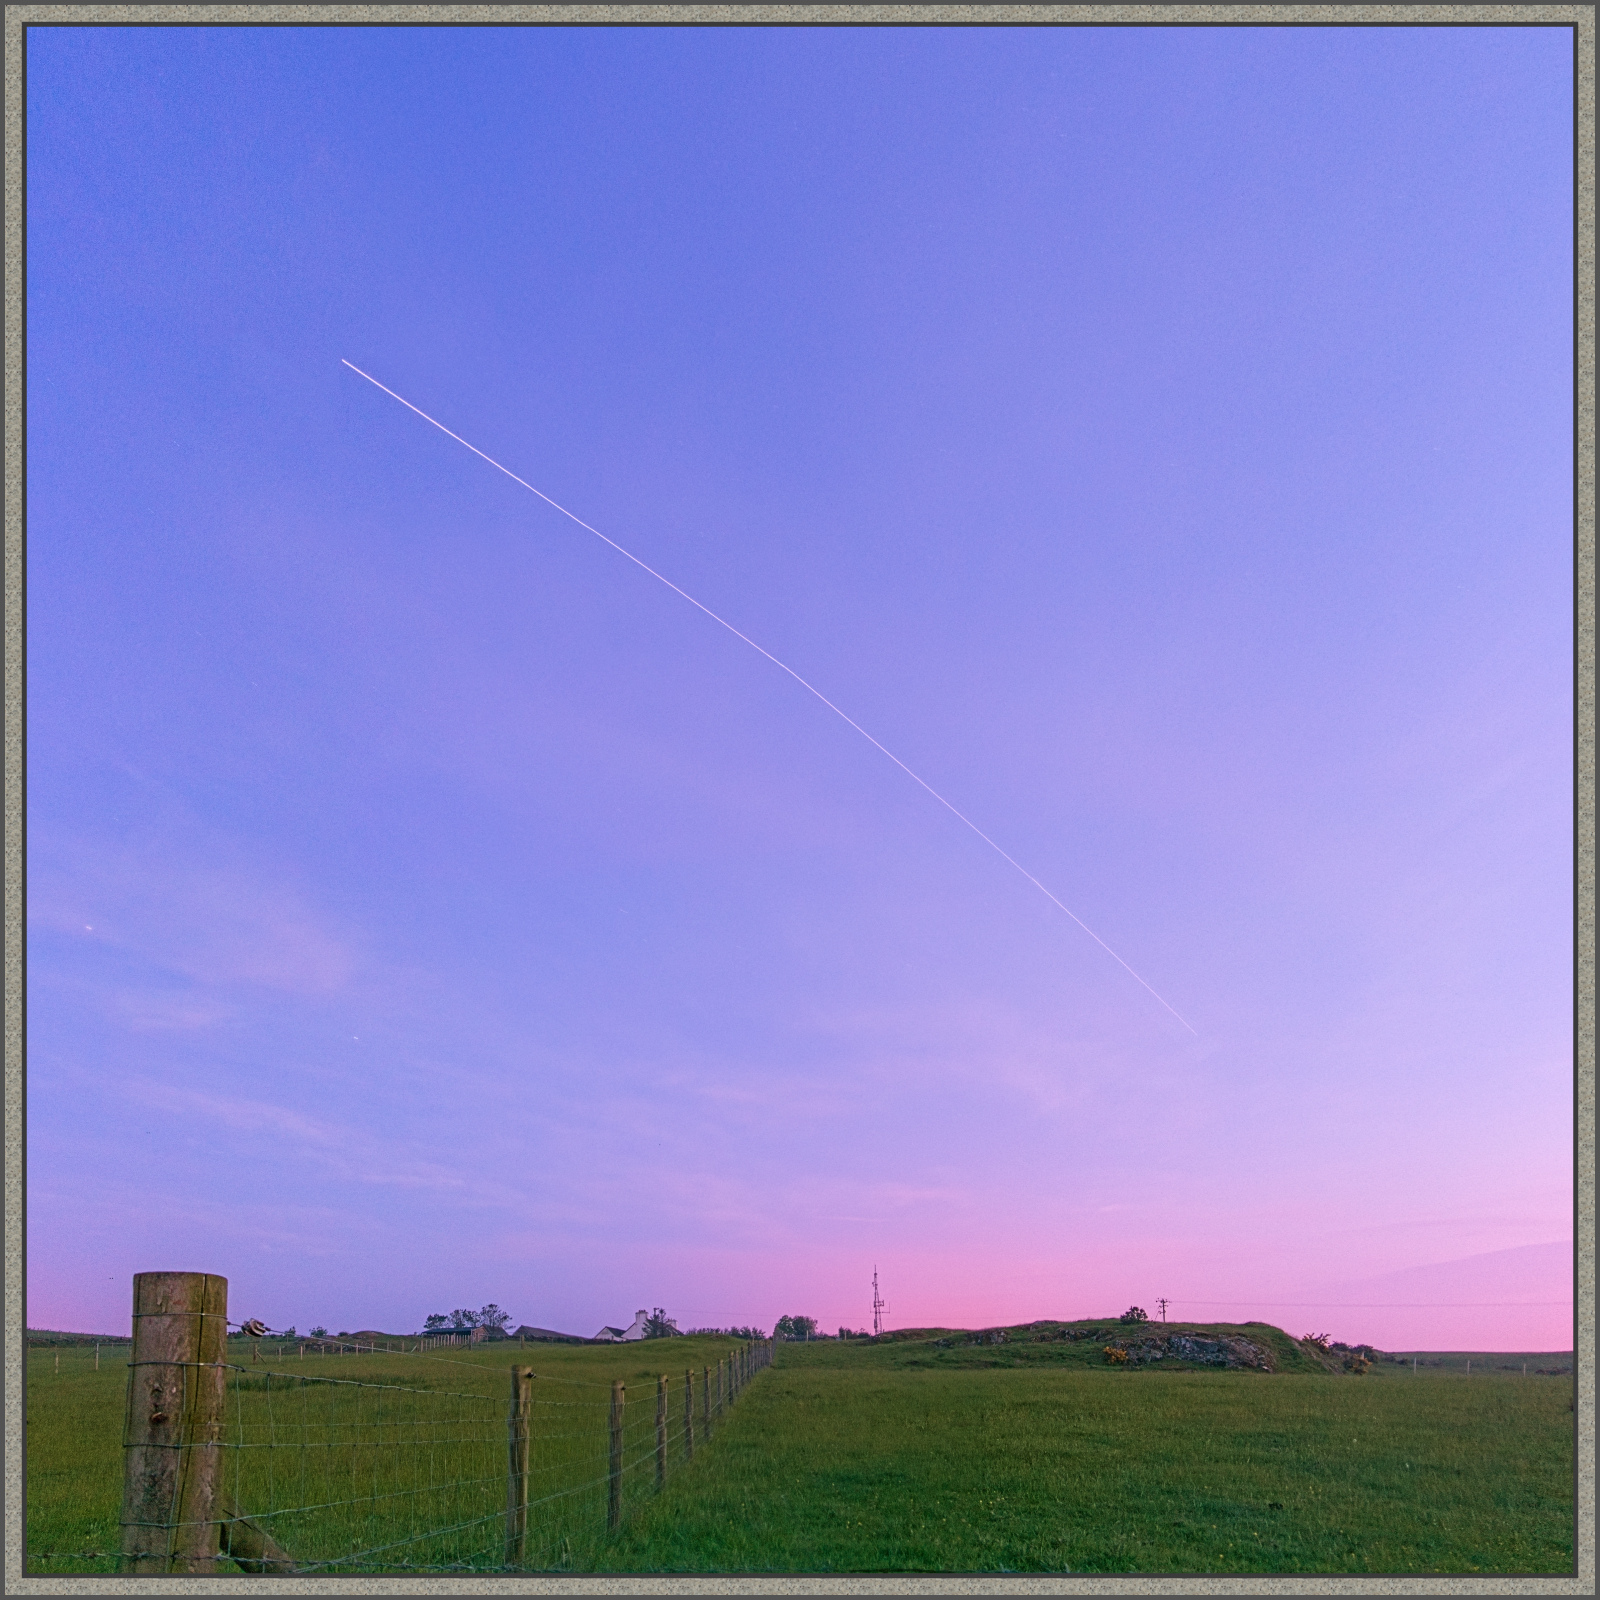 The International Space Station approaching from the west